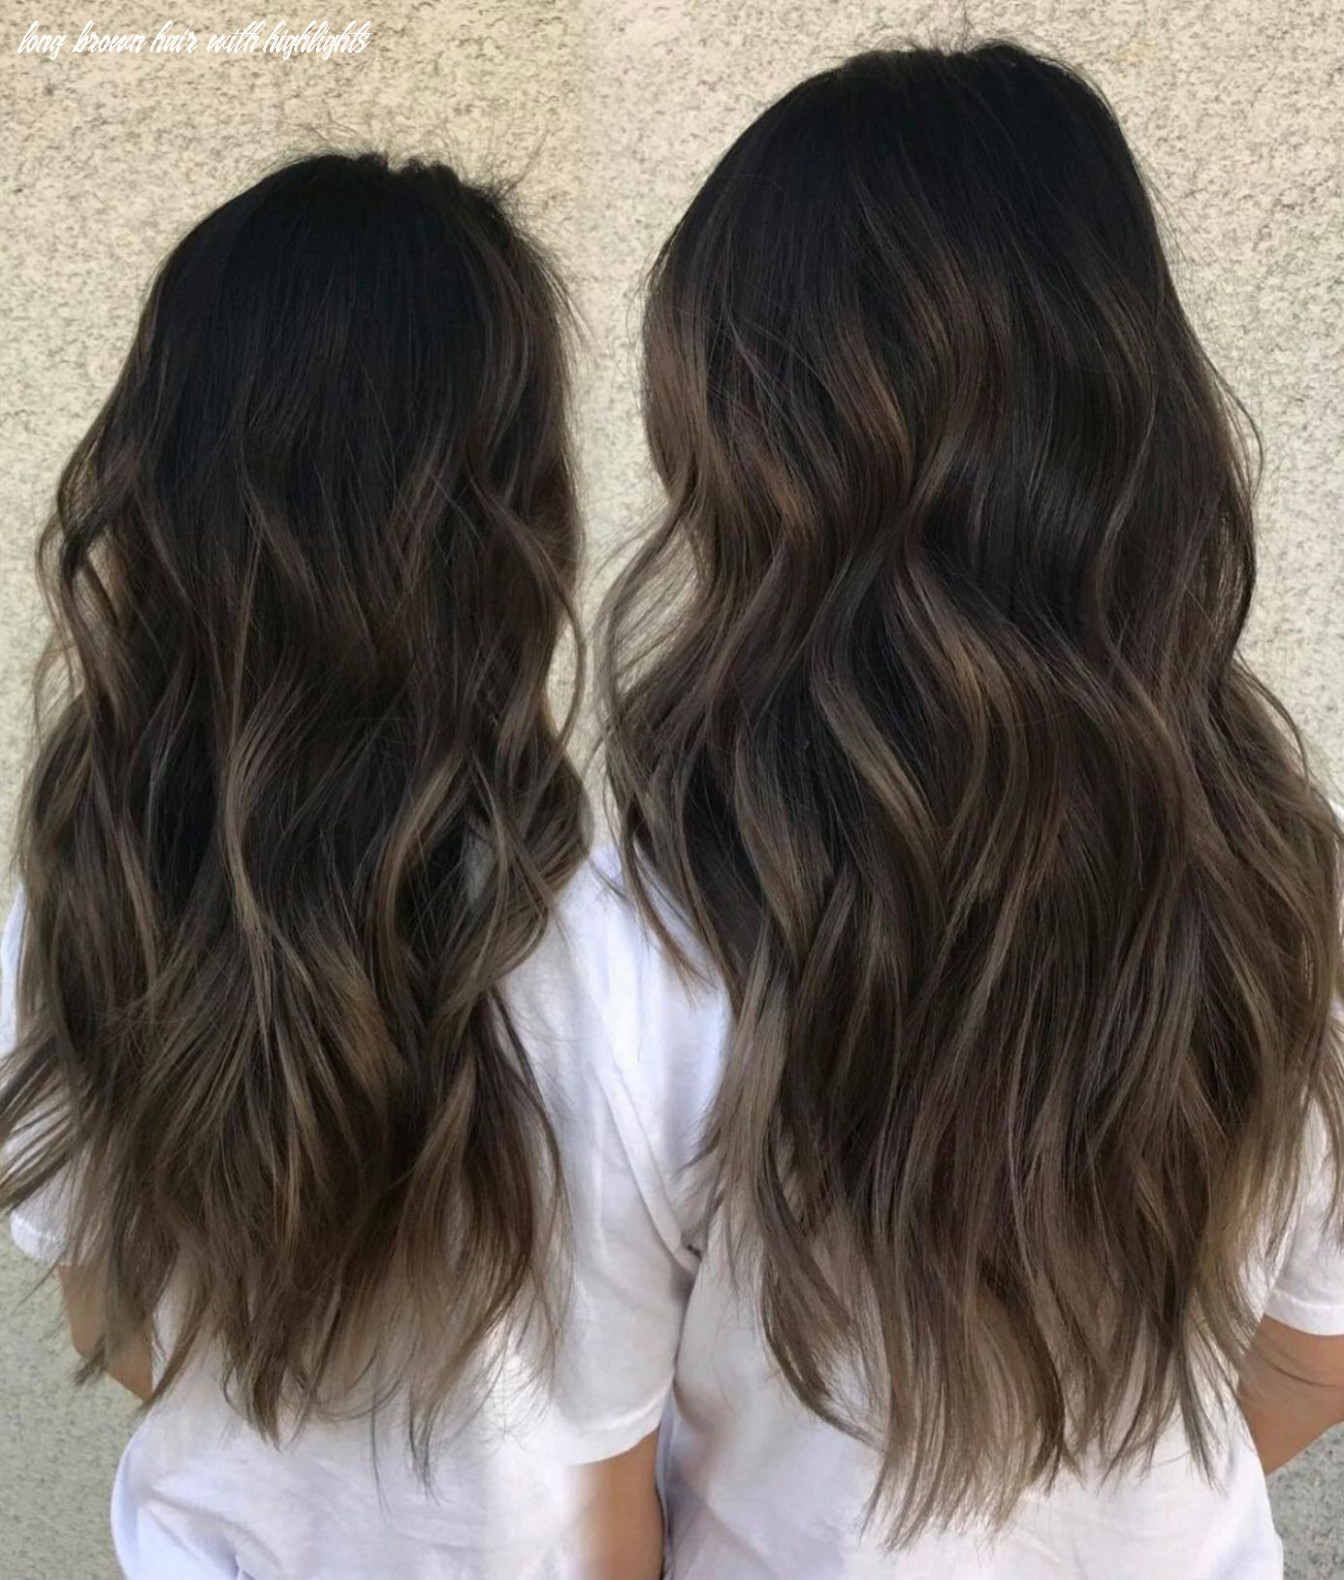 10 hairstyles featuring dark brown hair with highlights | haare